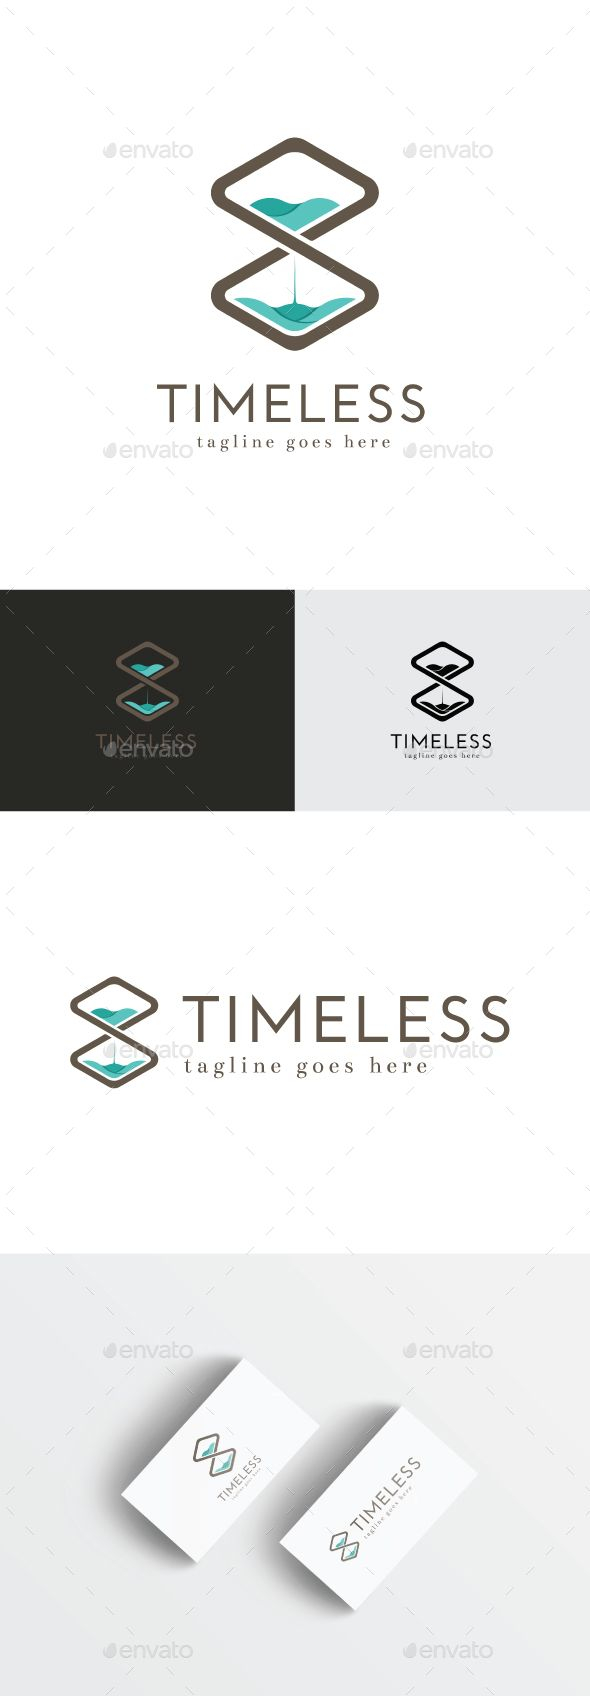 Timeless Logo EPS Template • Download ➝ https://graphicriver.net/item/timeless-logo/14688951?ref=pxcr